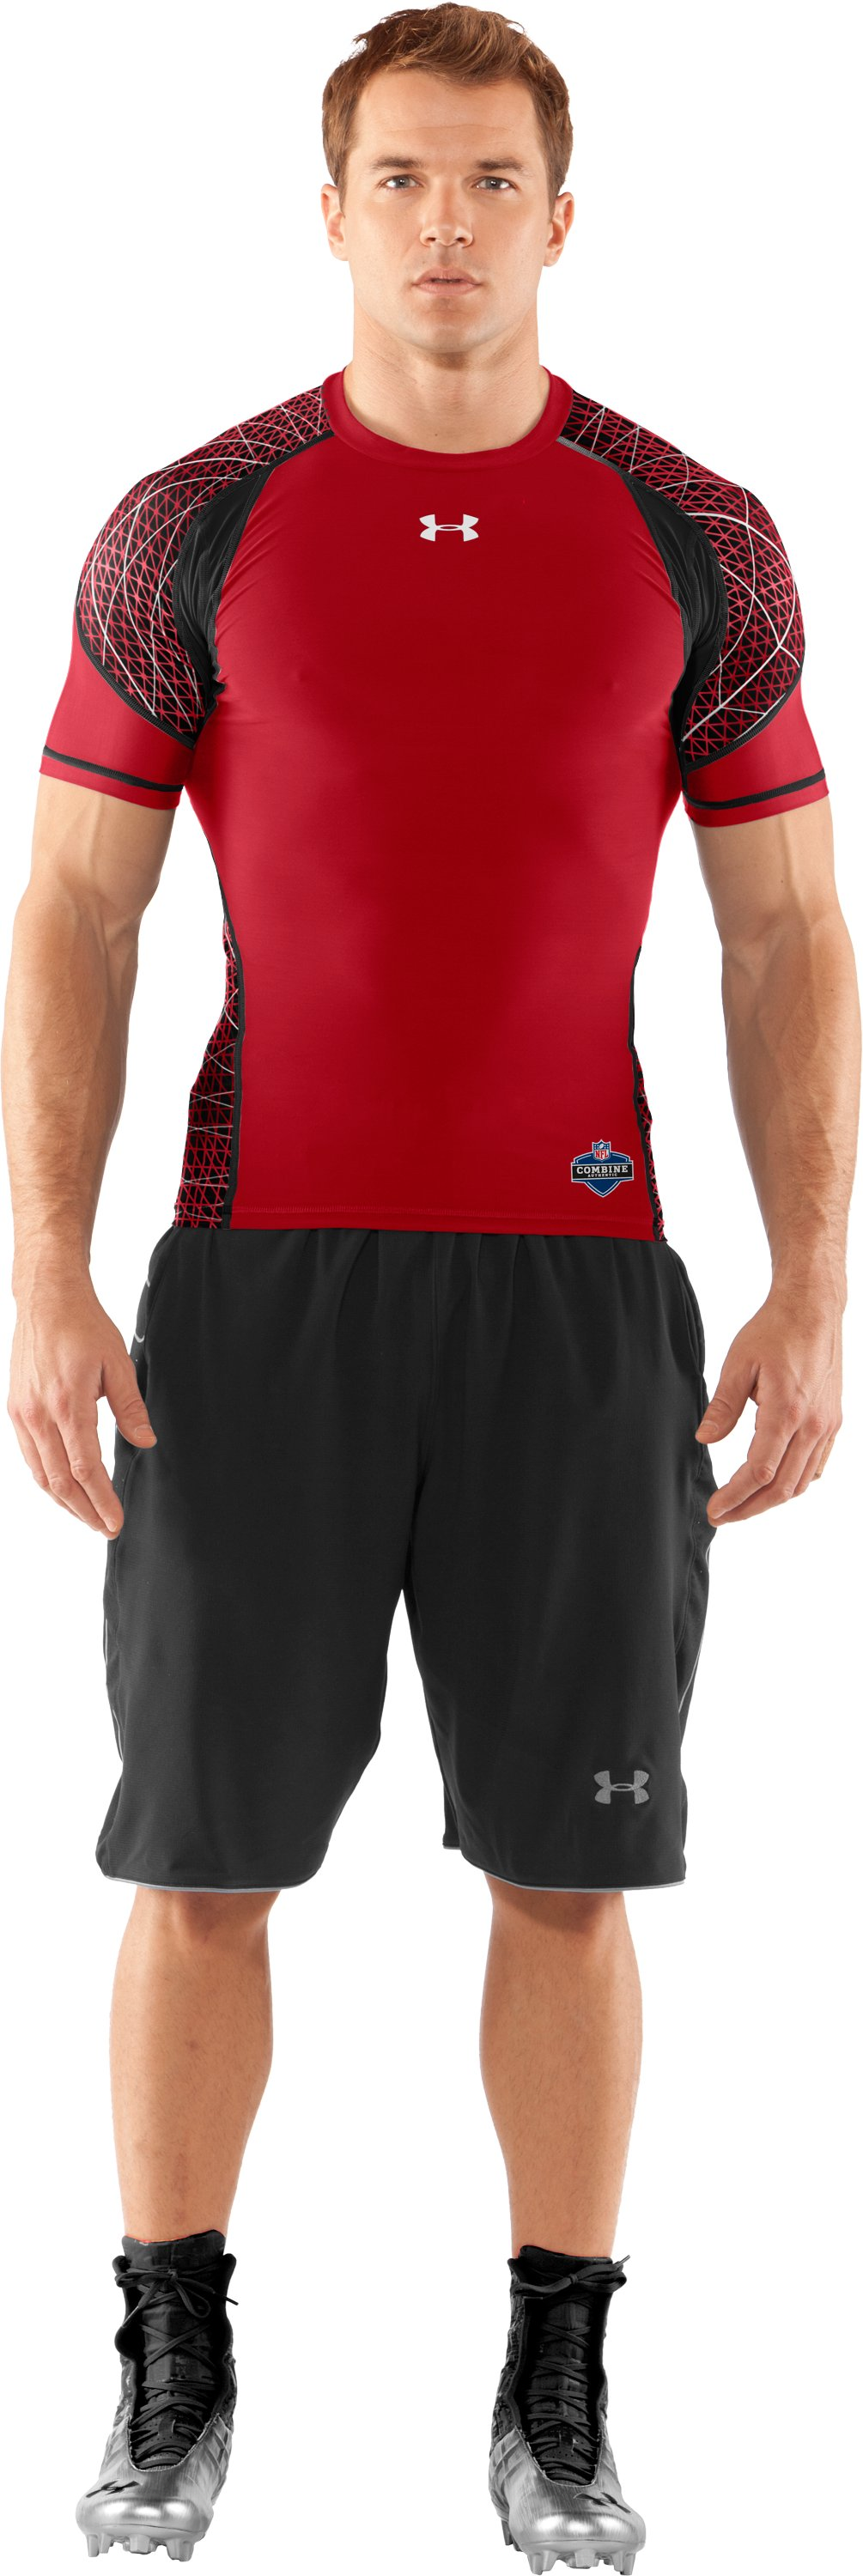 Men's NFL Combine Authentic Warp Speed Short Sleeve, Red, Front